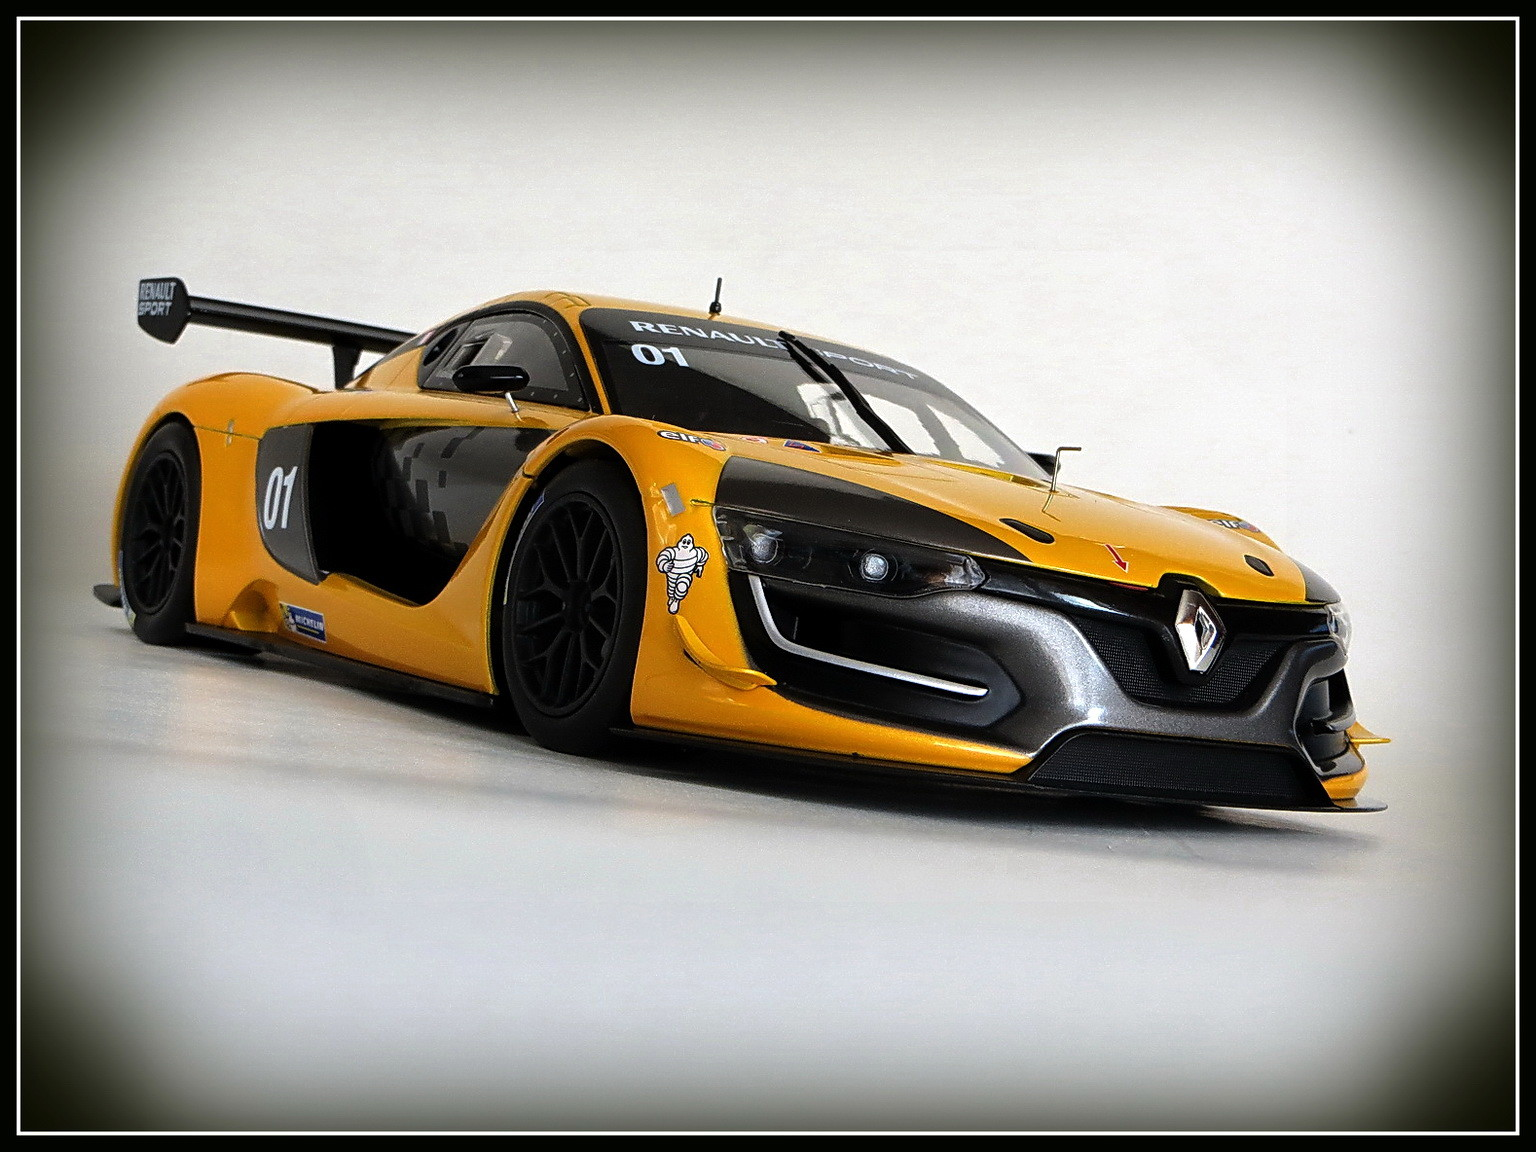 renault-rs 01-2015-005